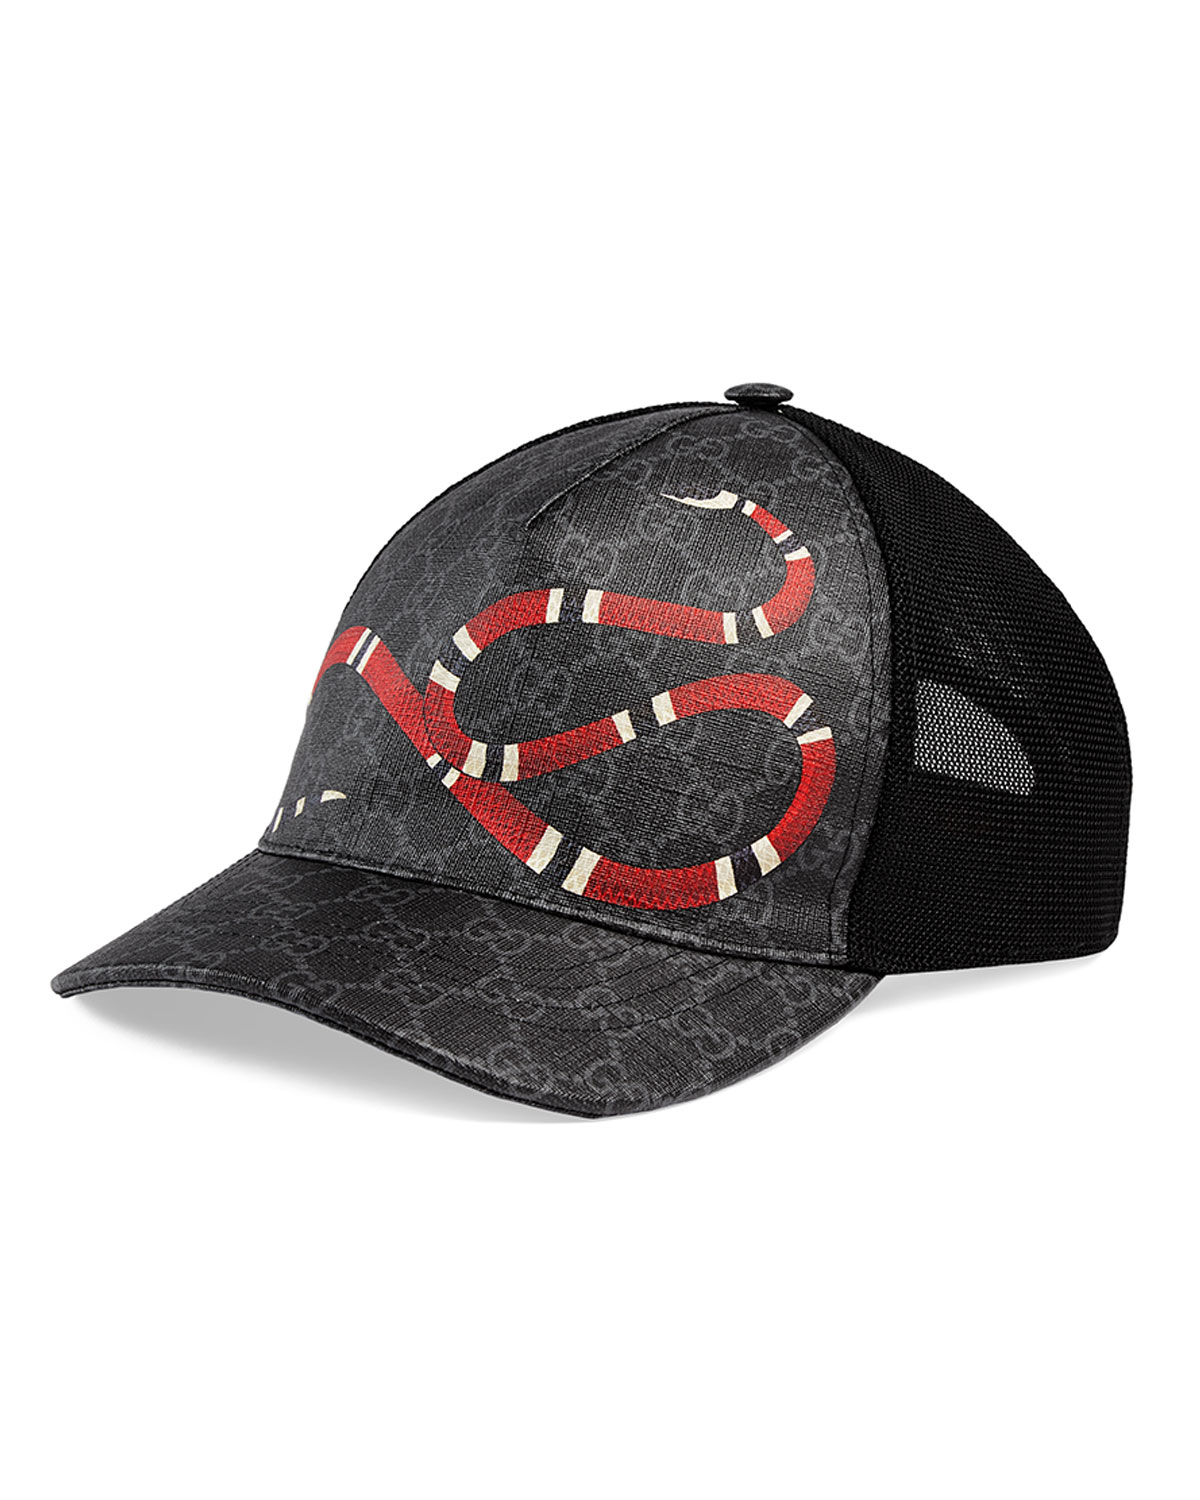 69c3a5bb34a Gucci Men s King Snake GG Supreme Baseball Cap